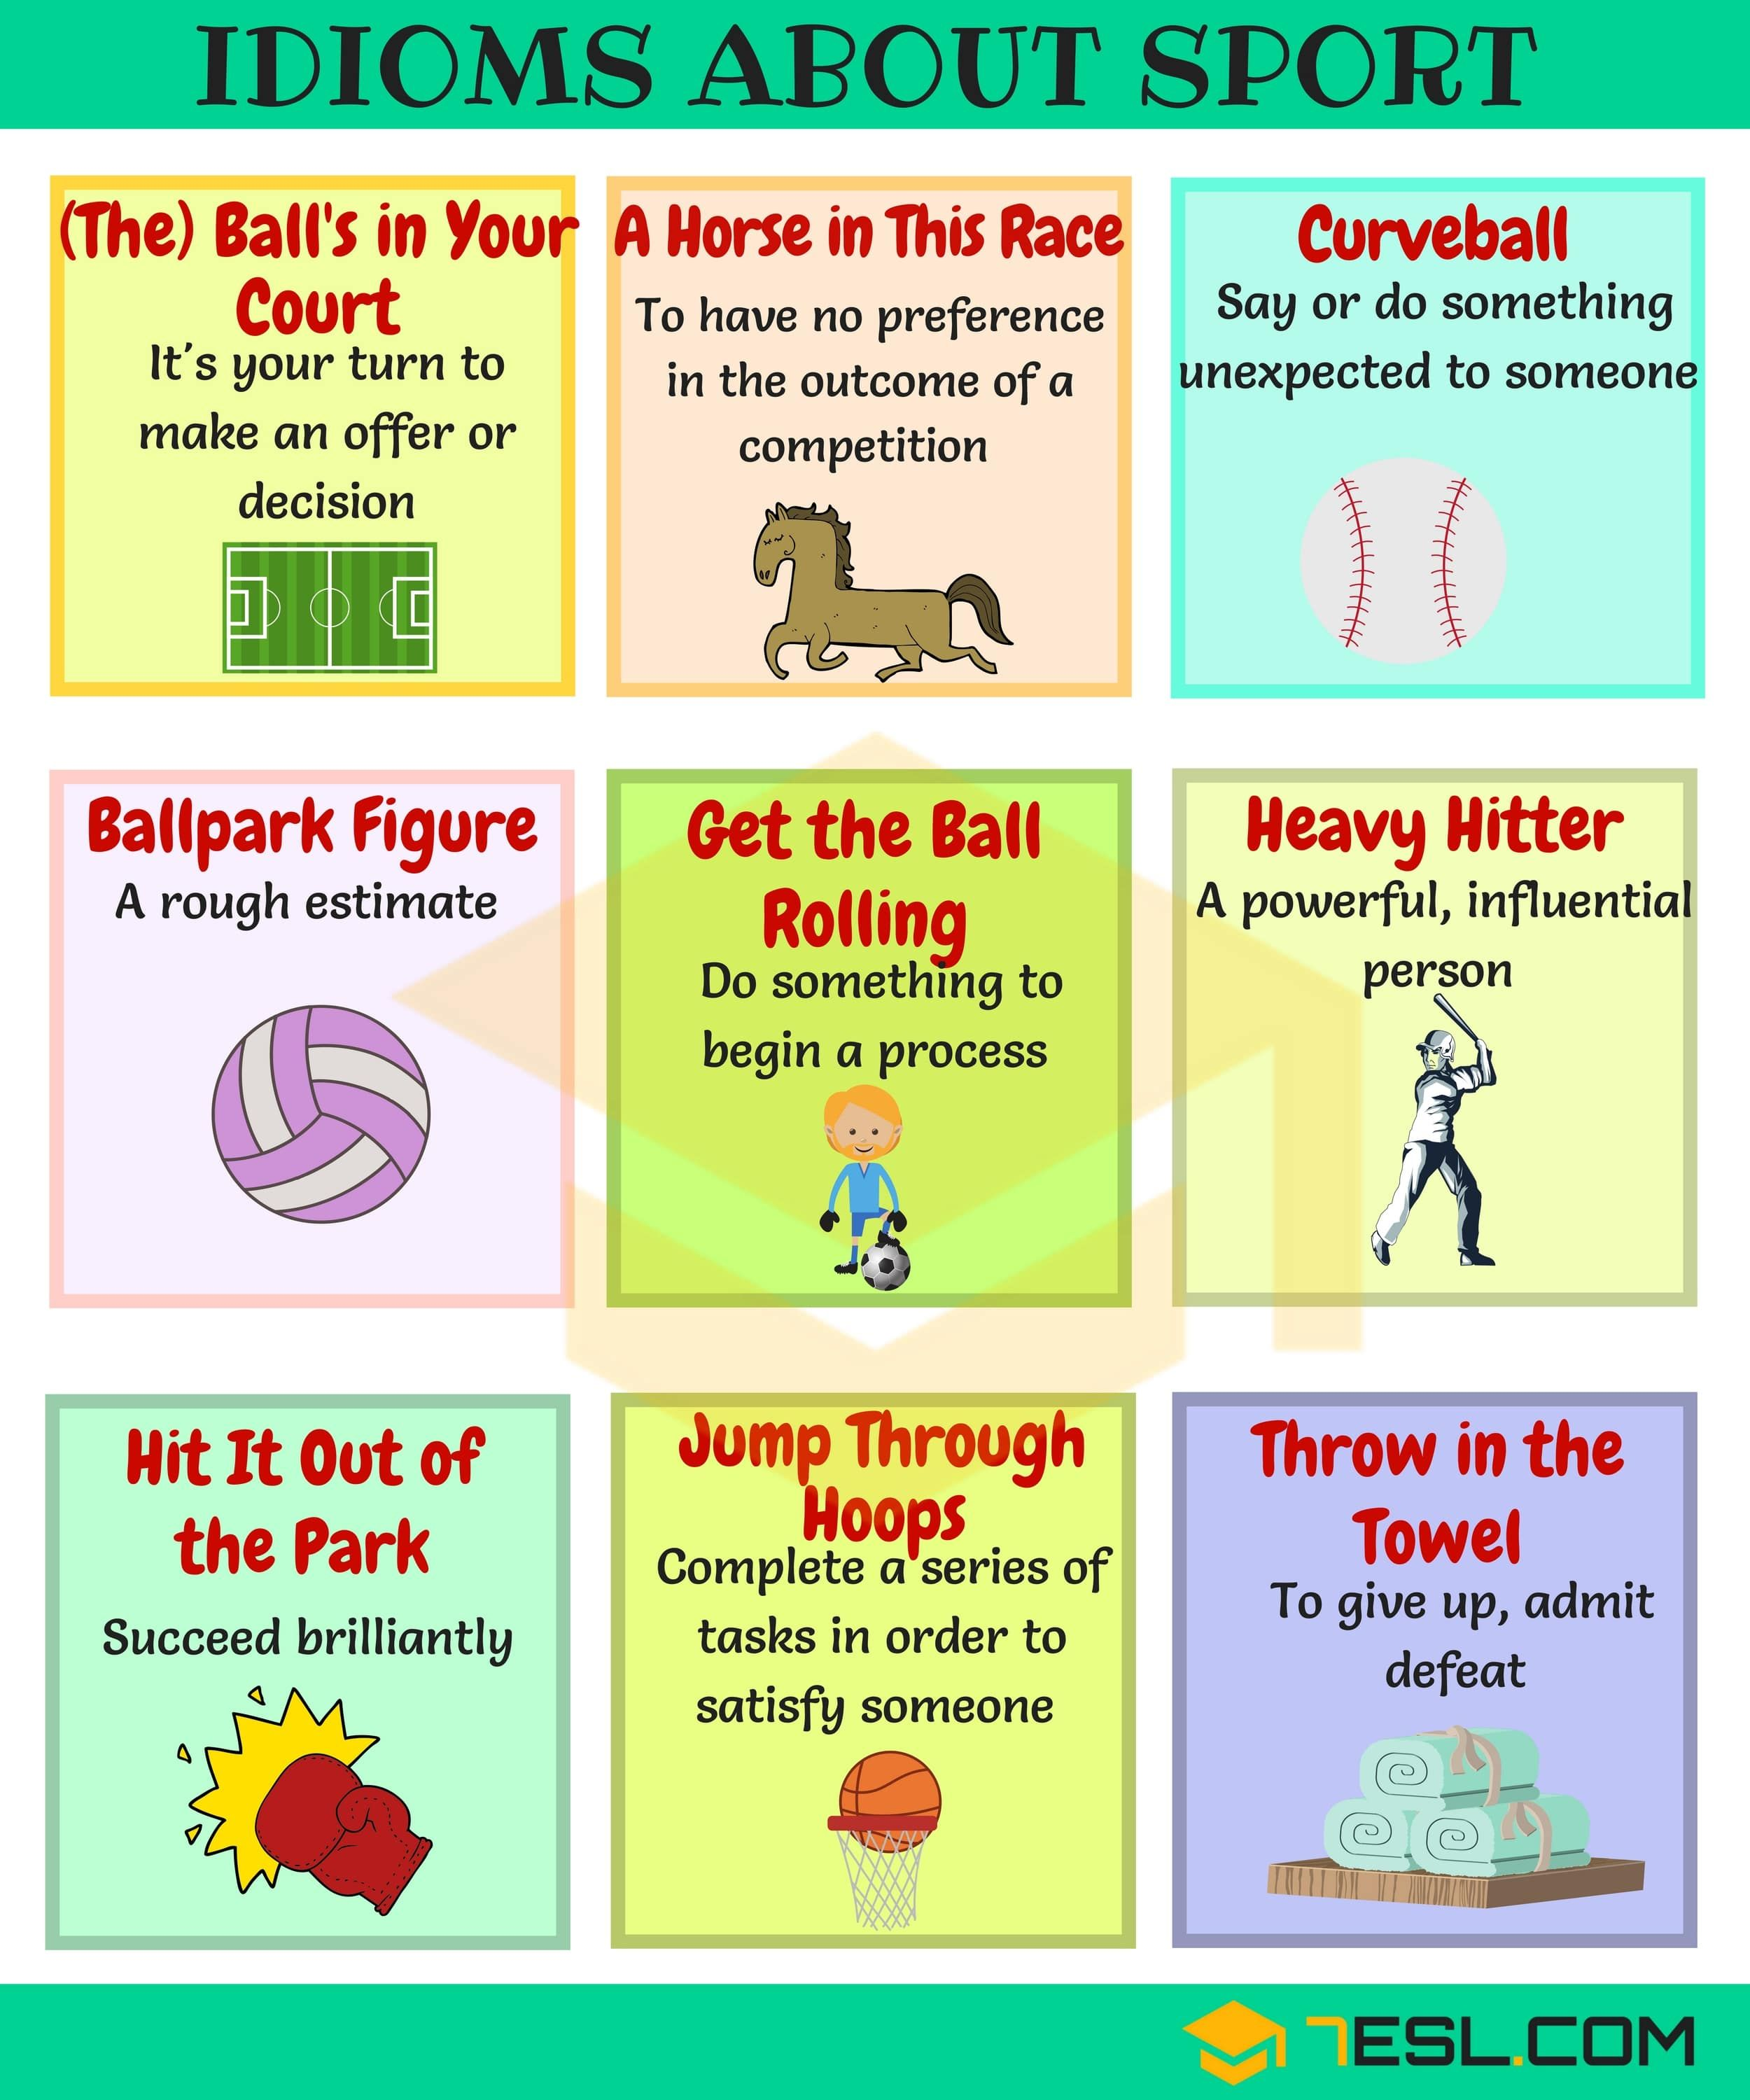 Sports Idioms 45 Useful Sport Idioms Phrases Modismos